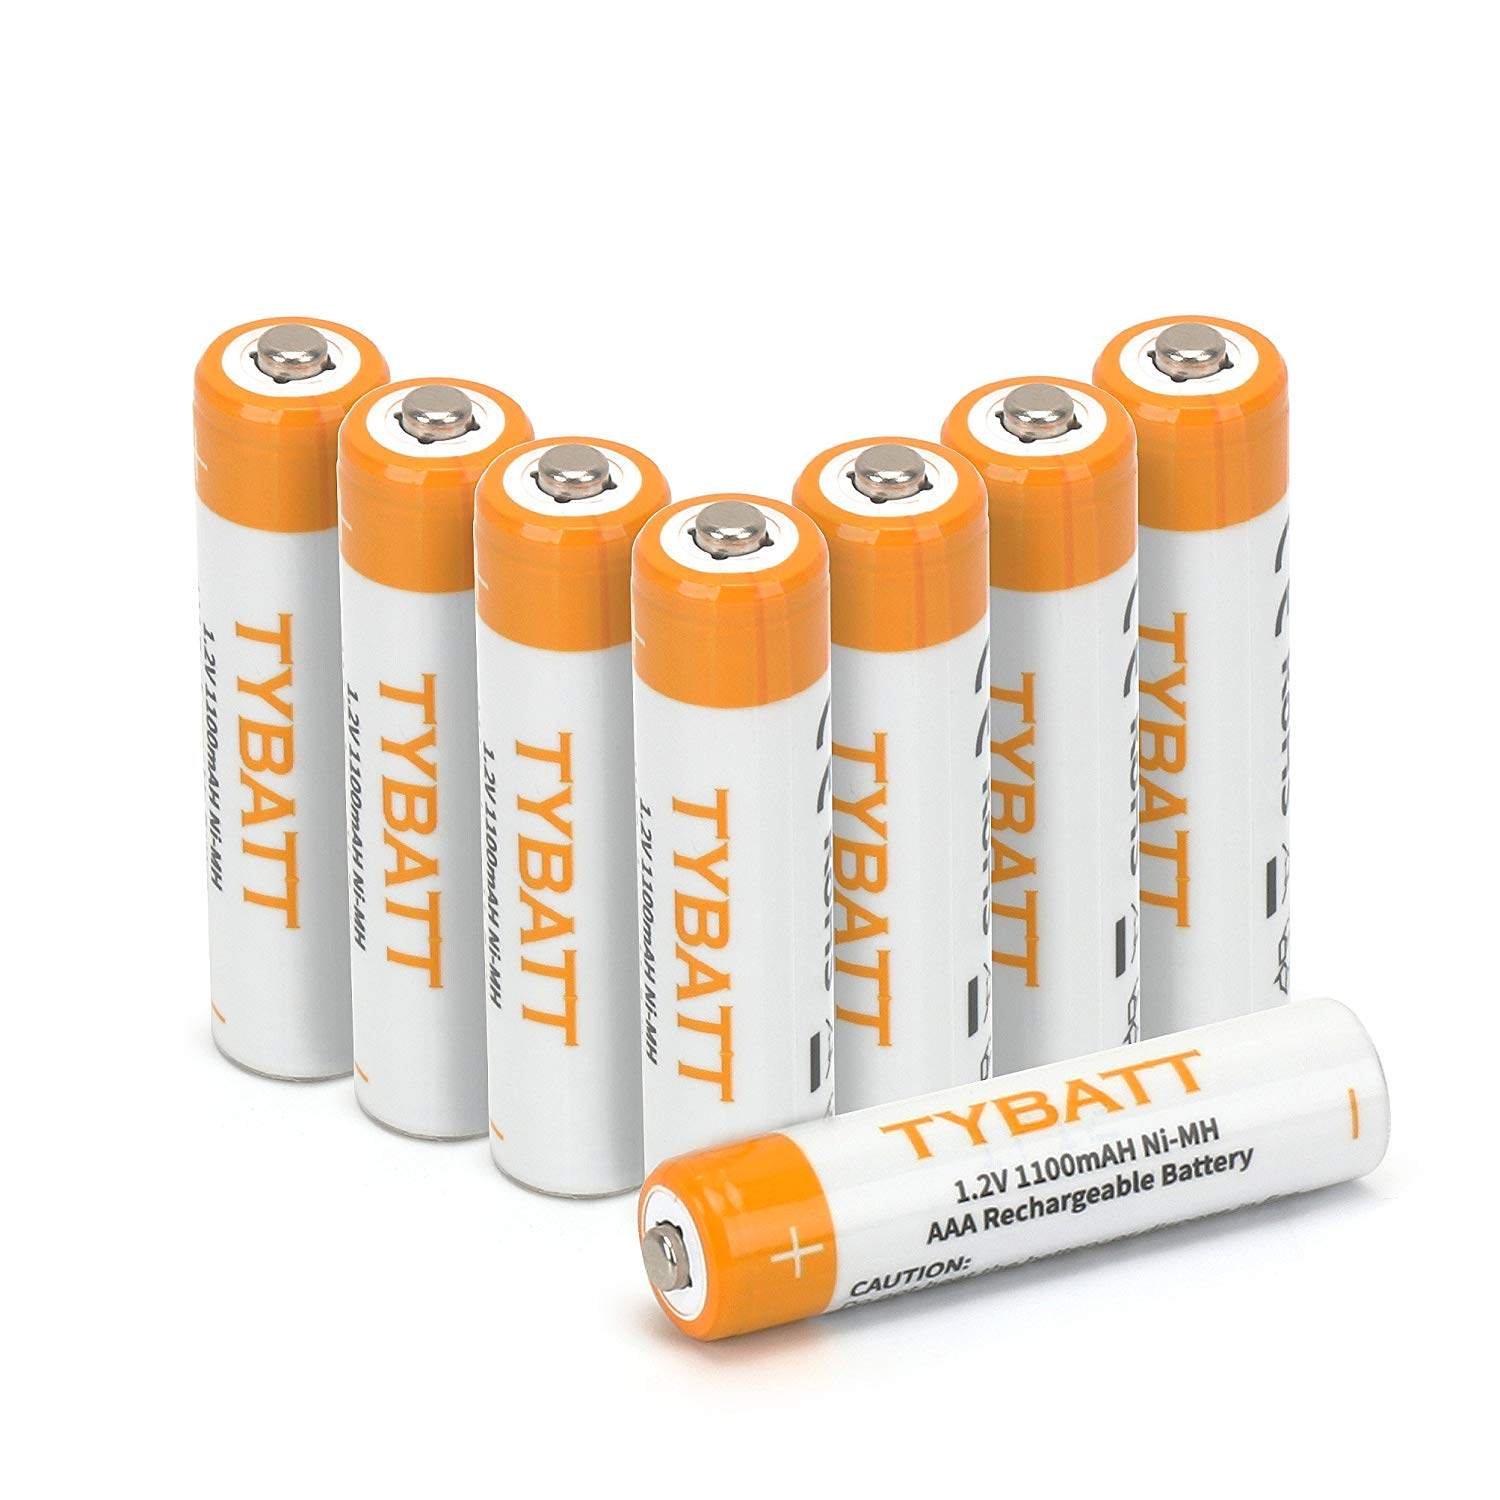 AAA 1100mAh Rechargeable Batteries